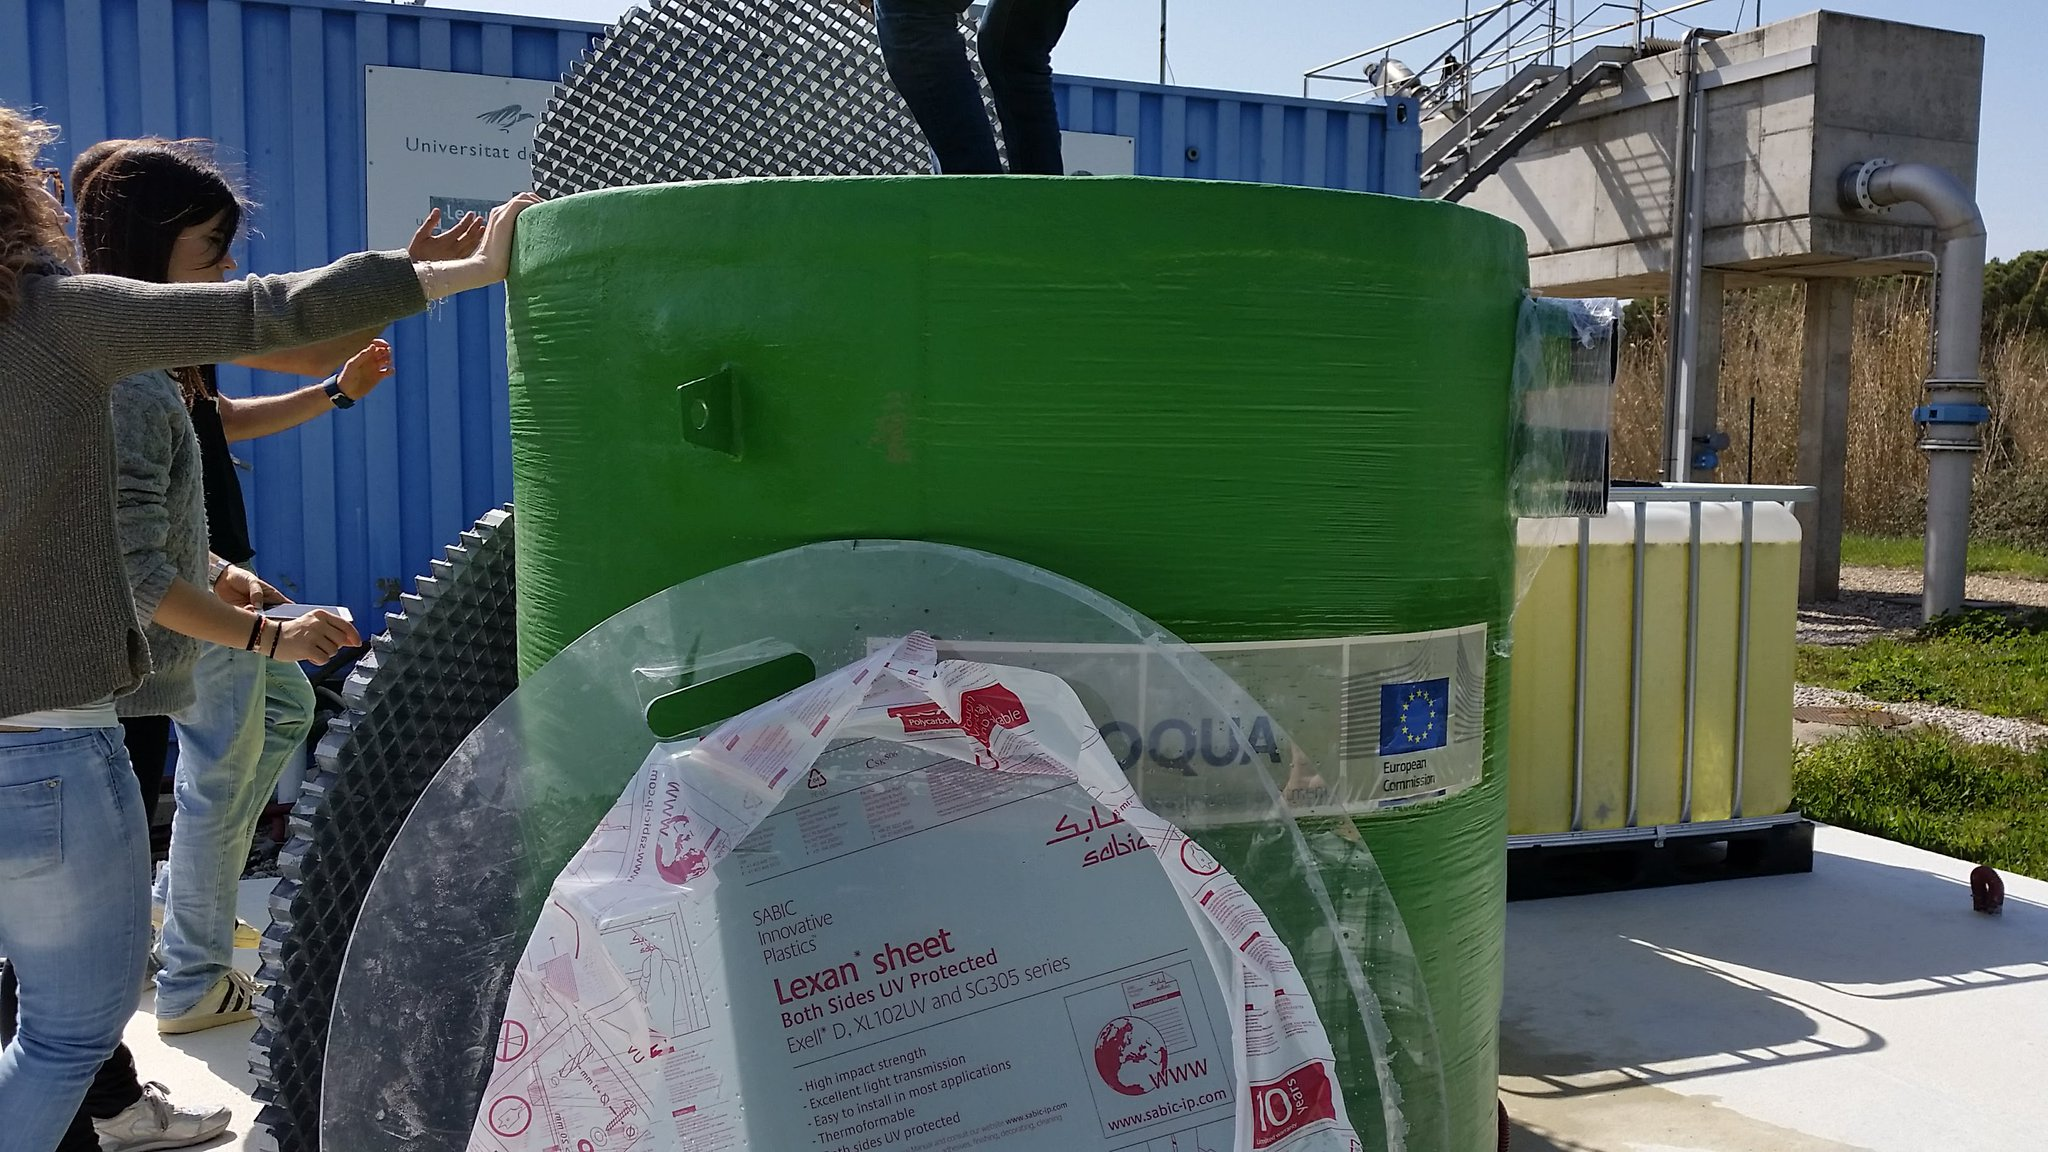 Great News. The Daphnia filter, designed and constructed by our partner @Inbrooll, is now set up at the prototype site of the @univgirona  #Horizon2020  #wastewater treatment  #sanitation4all https://t.co/4uv9CZyBlr